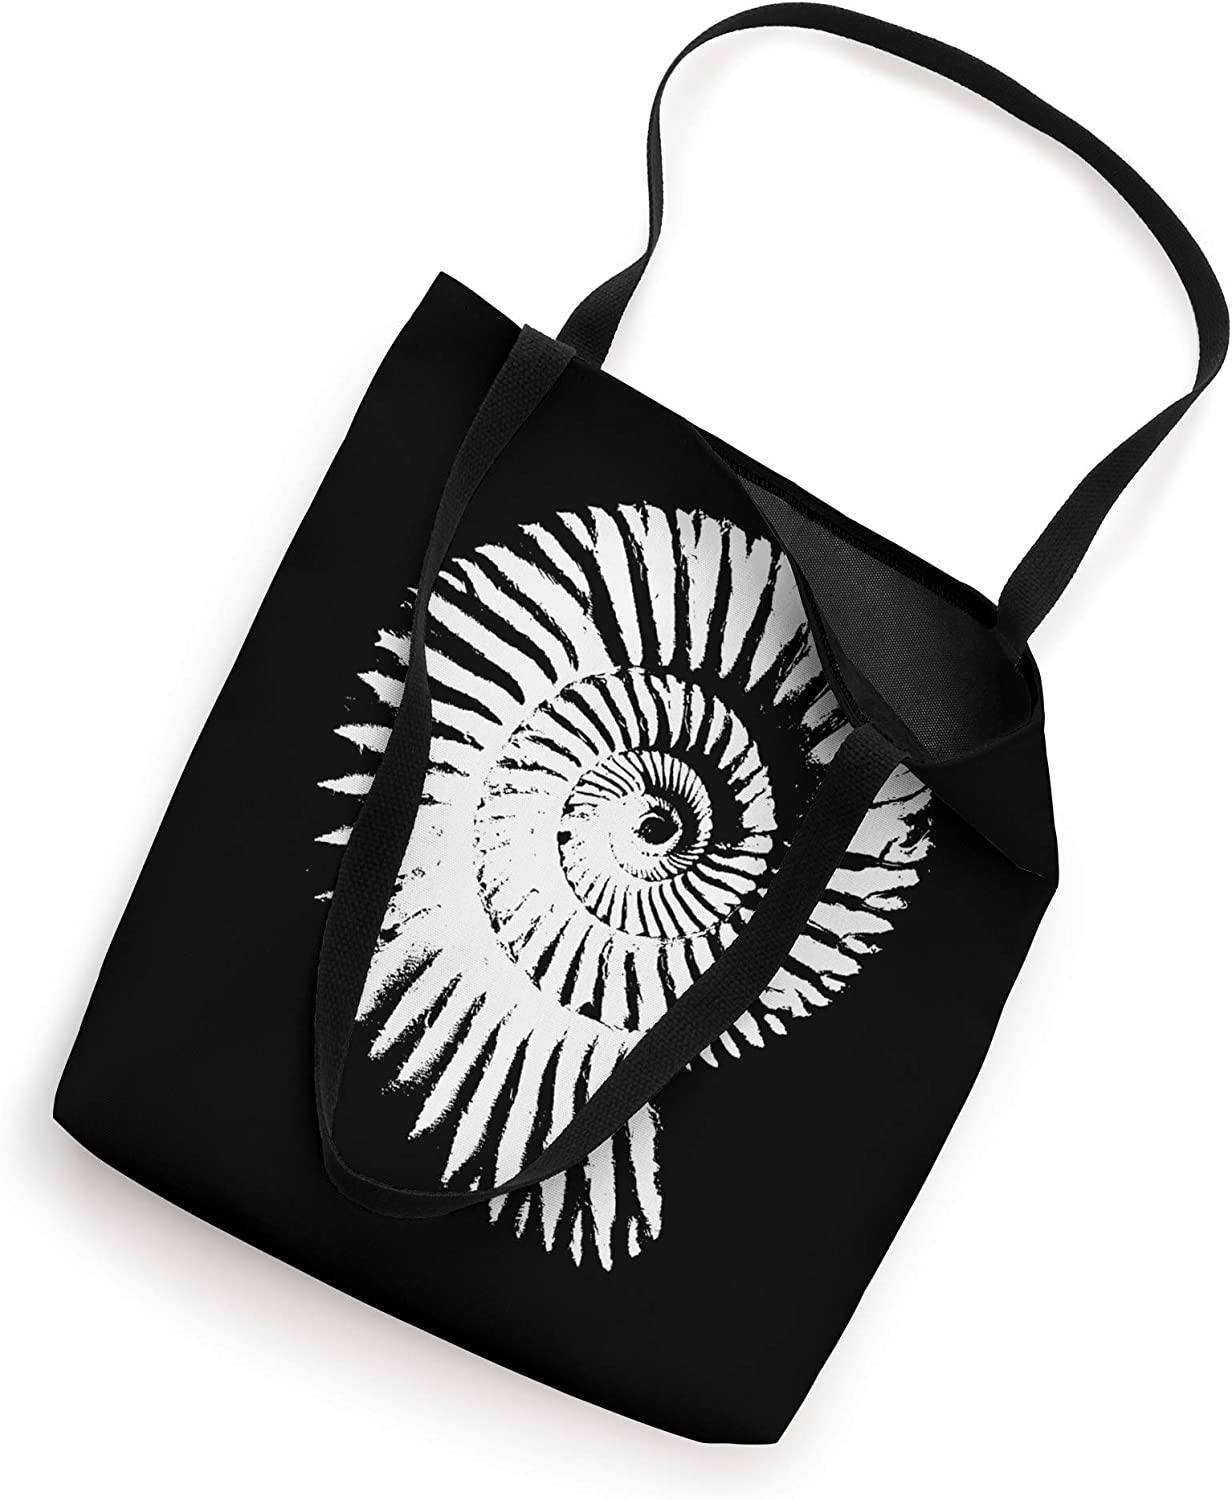 Ammonite Fossil Collector Rock Hound Cool Paleontology Tote Bag